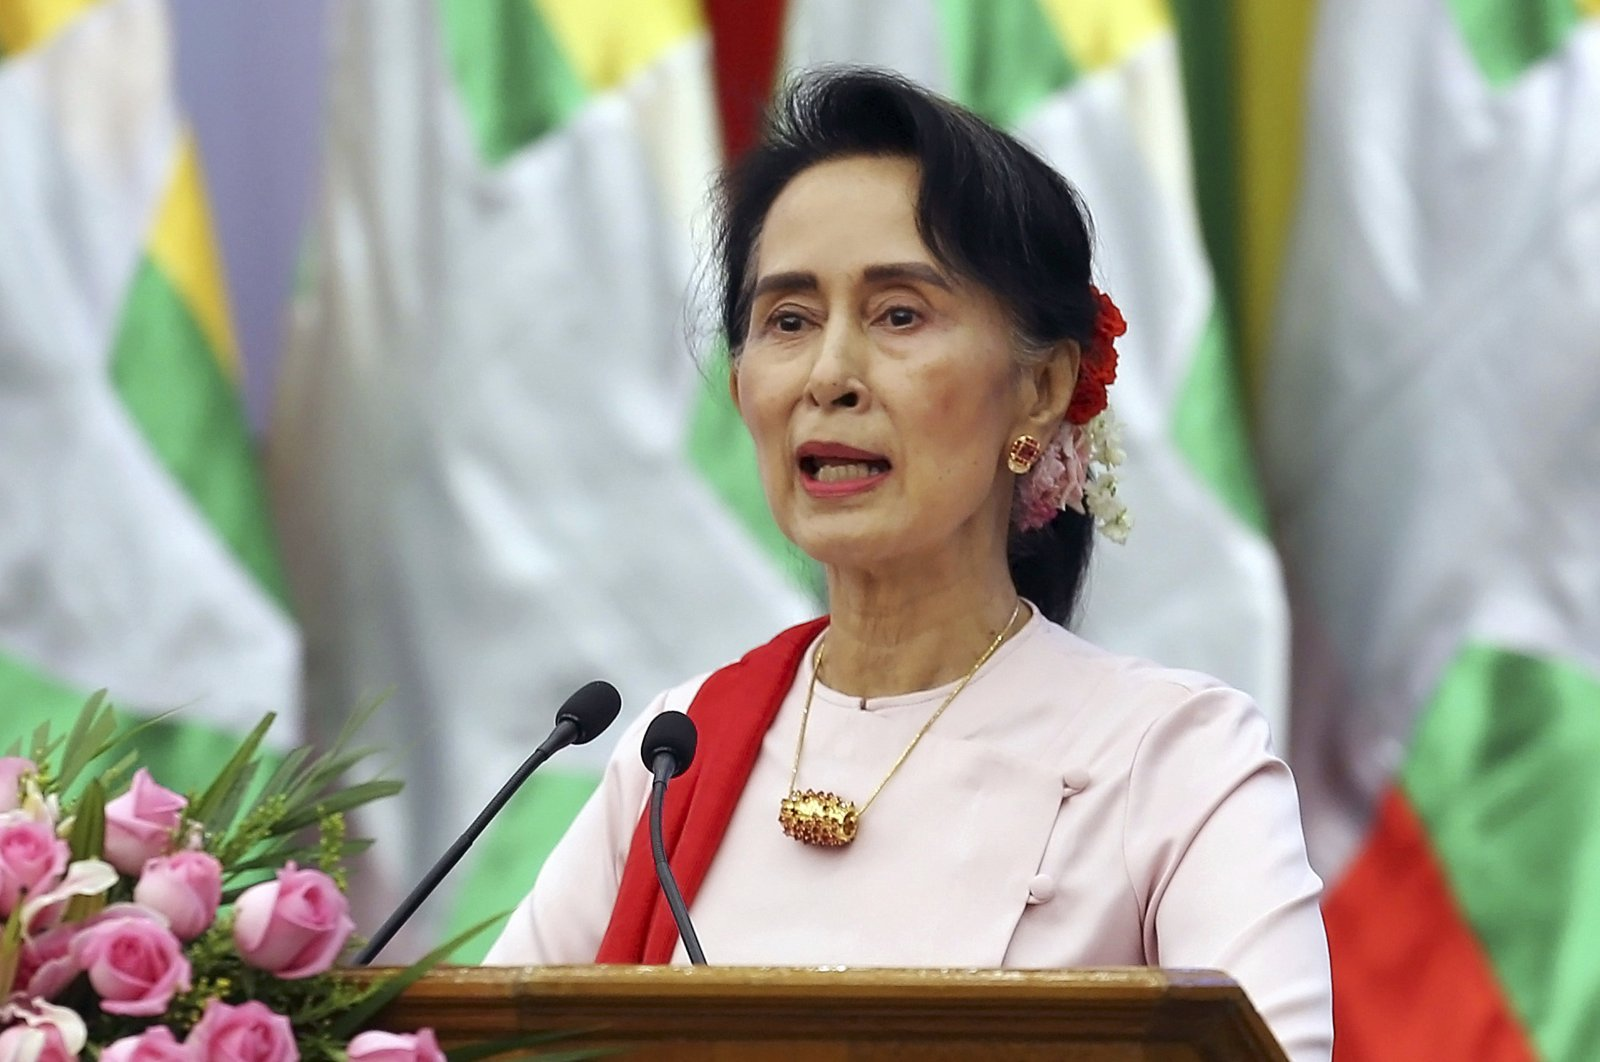 Myanmar's State Counselor Aung San Suu Kyi delivers an opening speech during the Forum on Myanmar Democratic Transition in Naypyitaw, Myanmar, Aug. 11, 2017. (AP Photo)